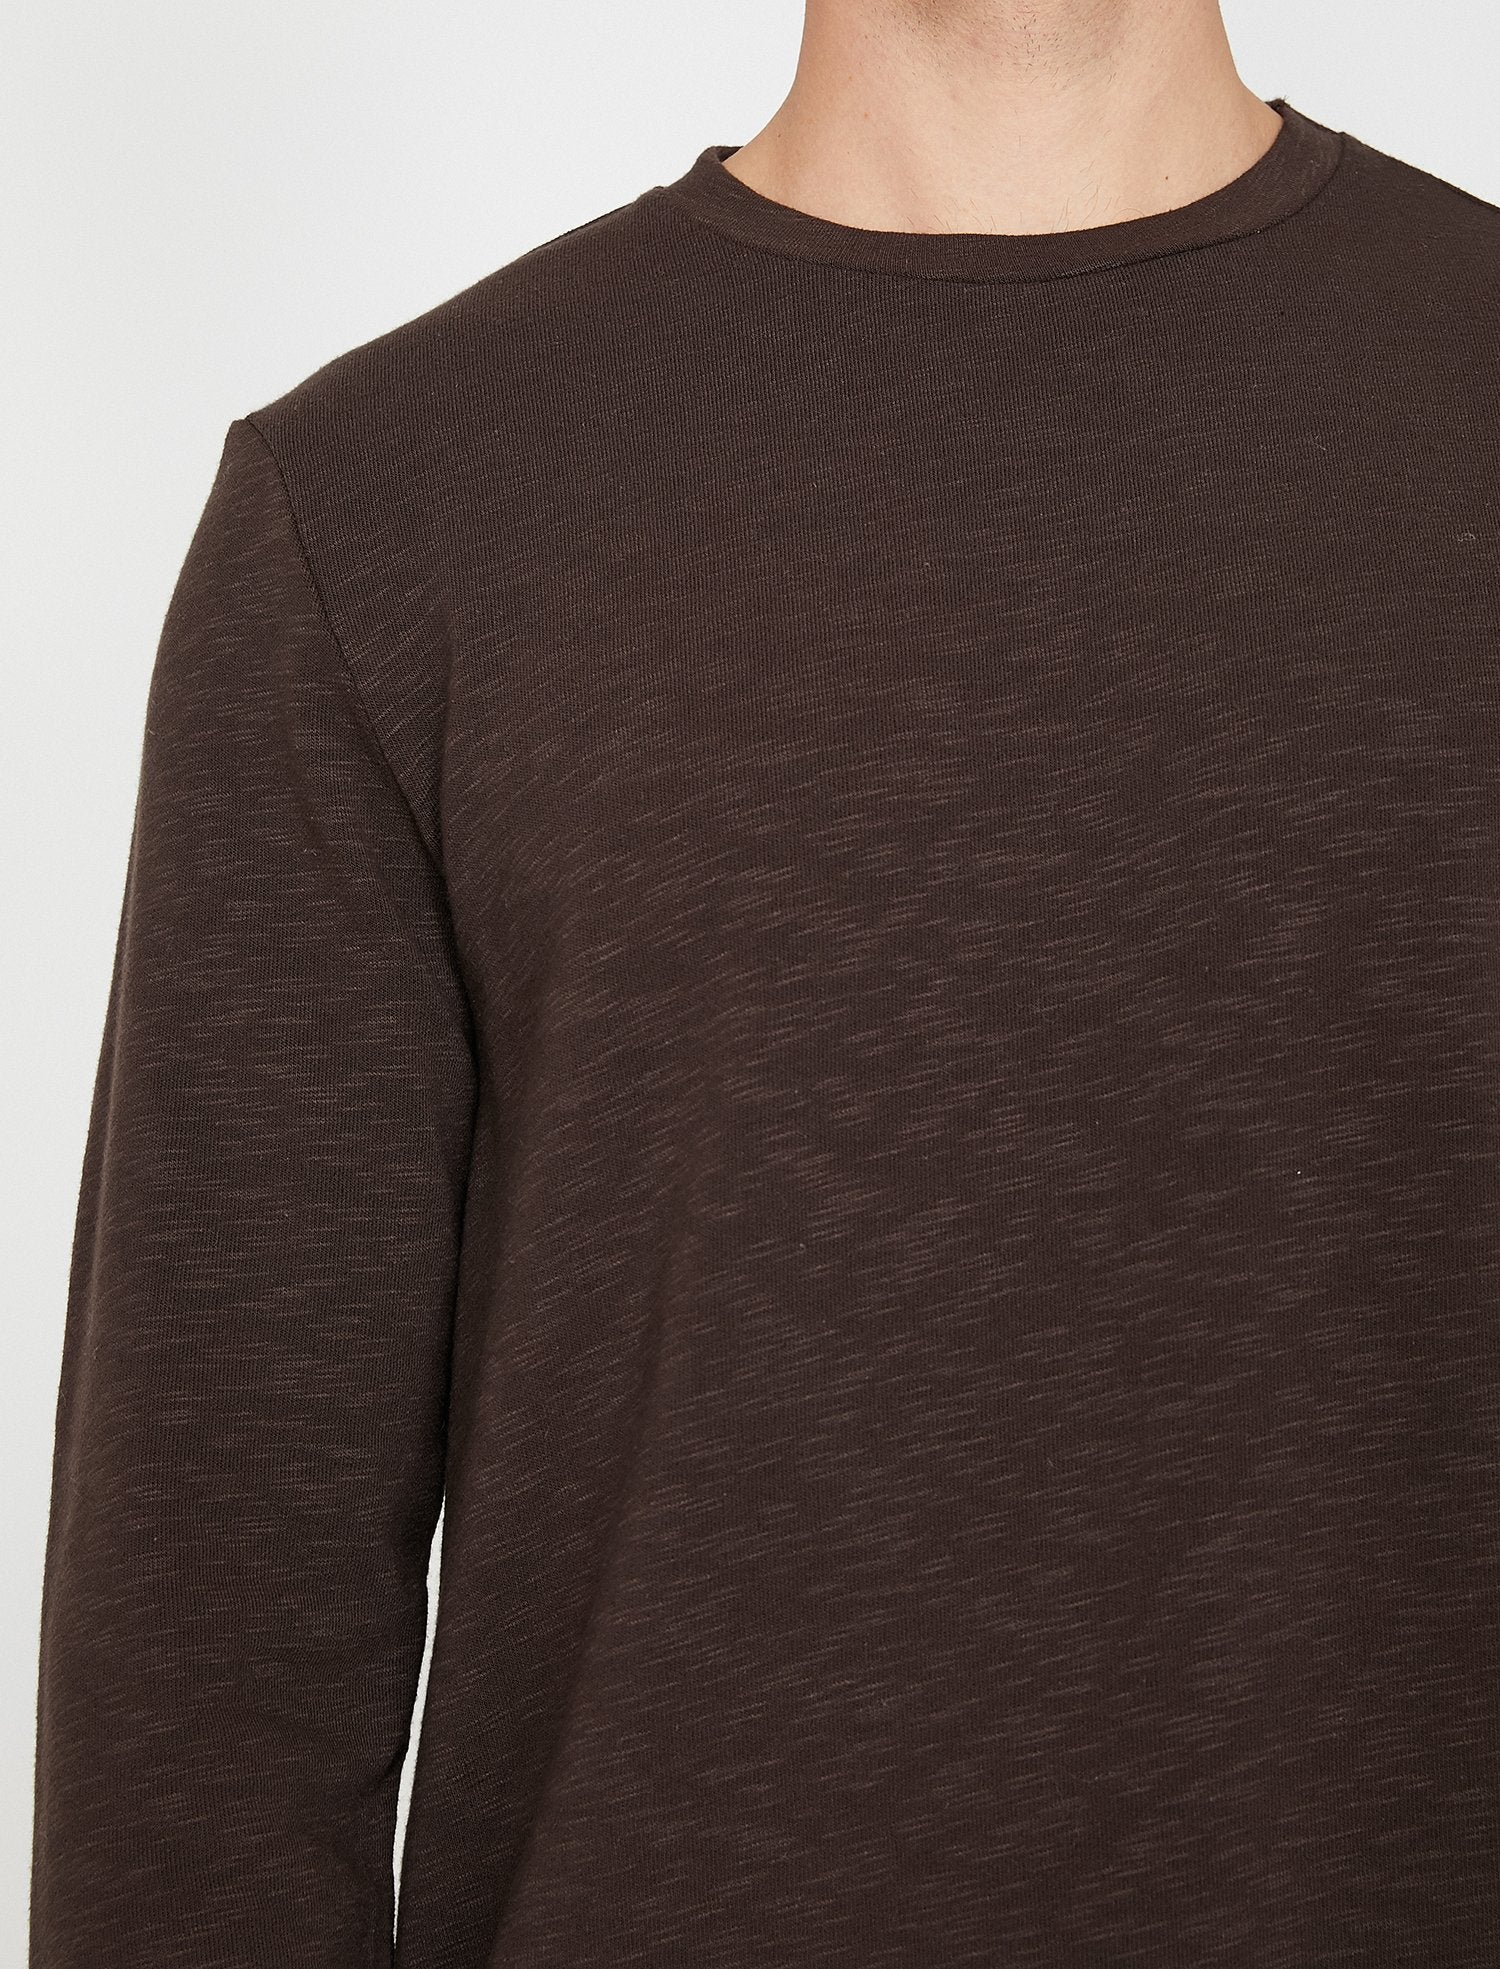 Crew Neck Tee in Brown